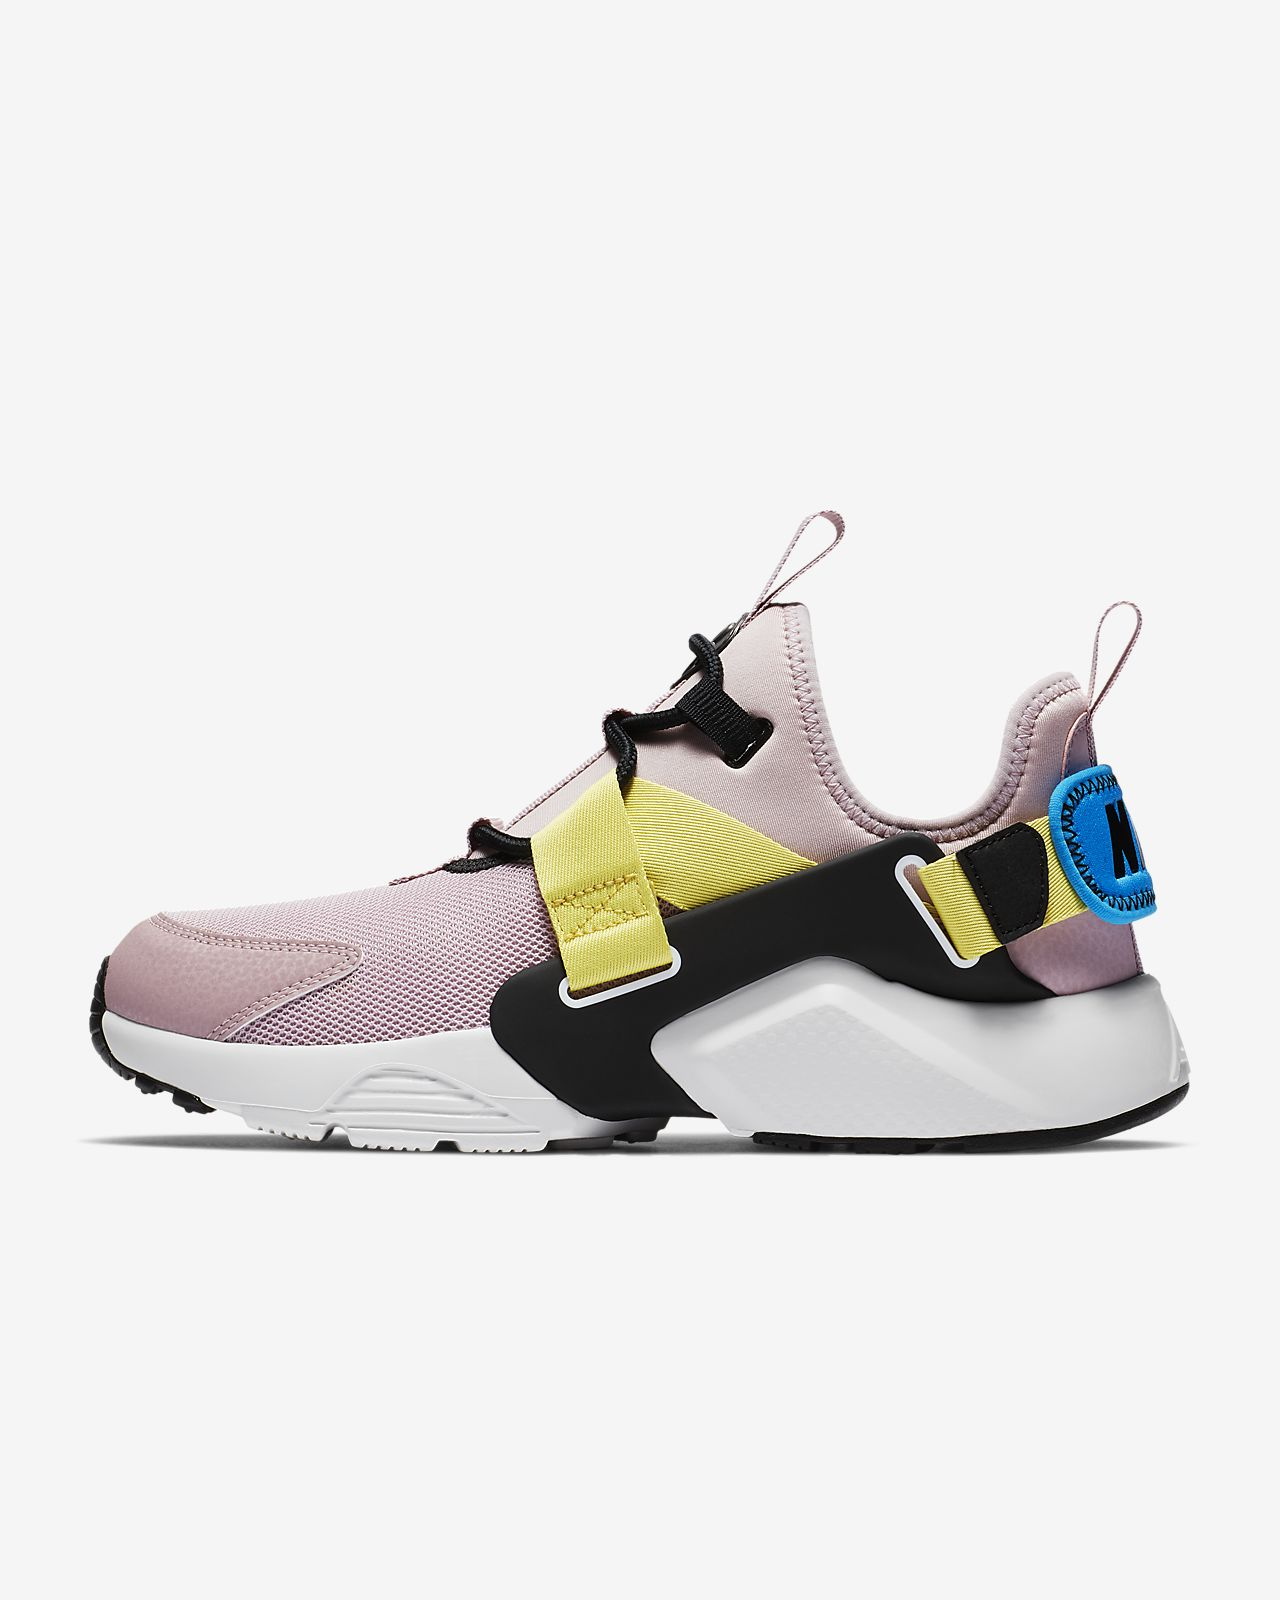 pretty nice 71c27 38629 ... Nike Air Huarache City Low Women s Shoe